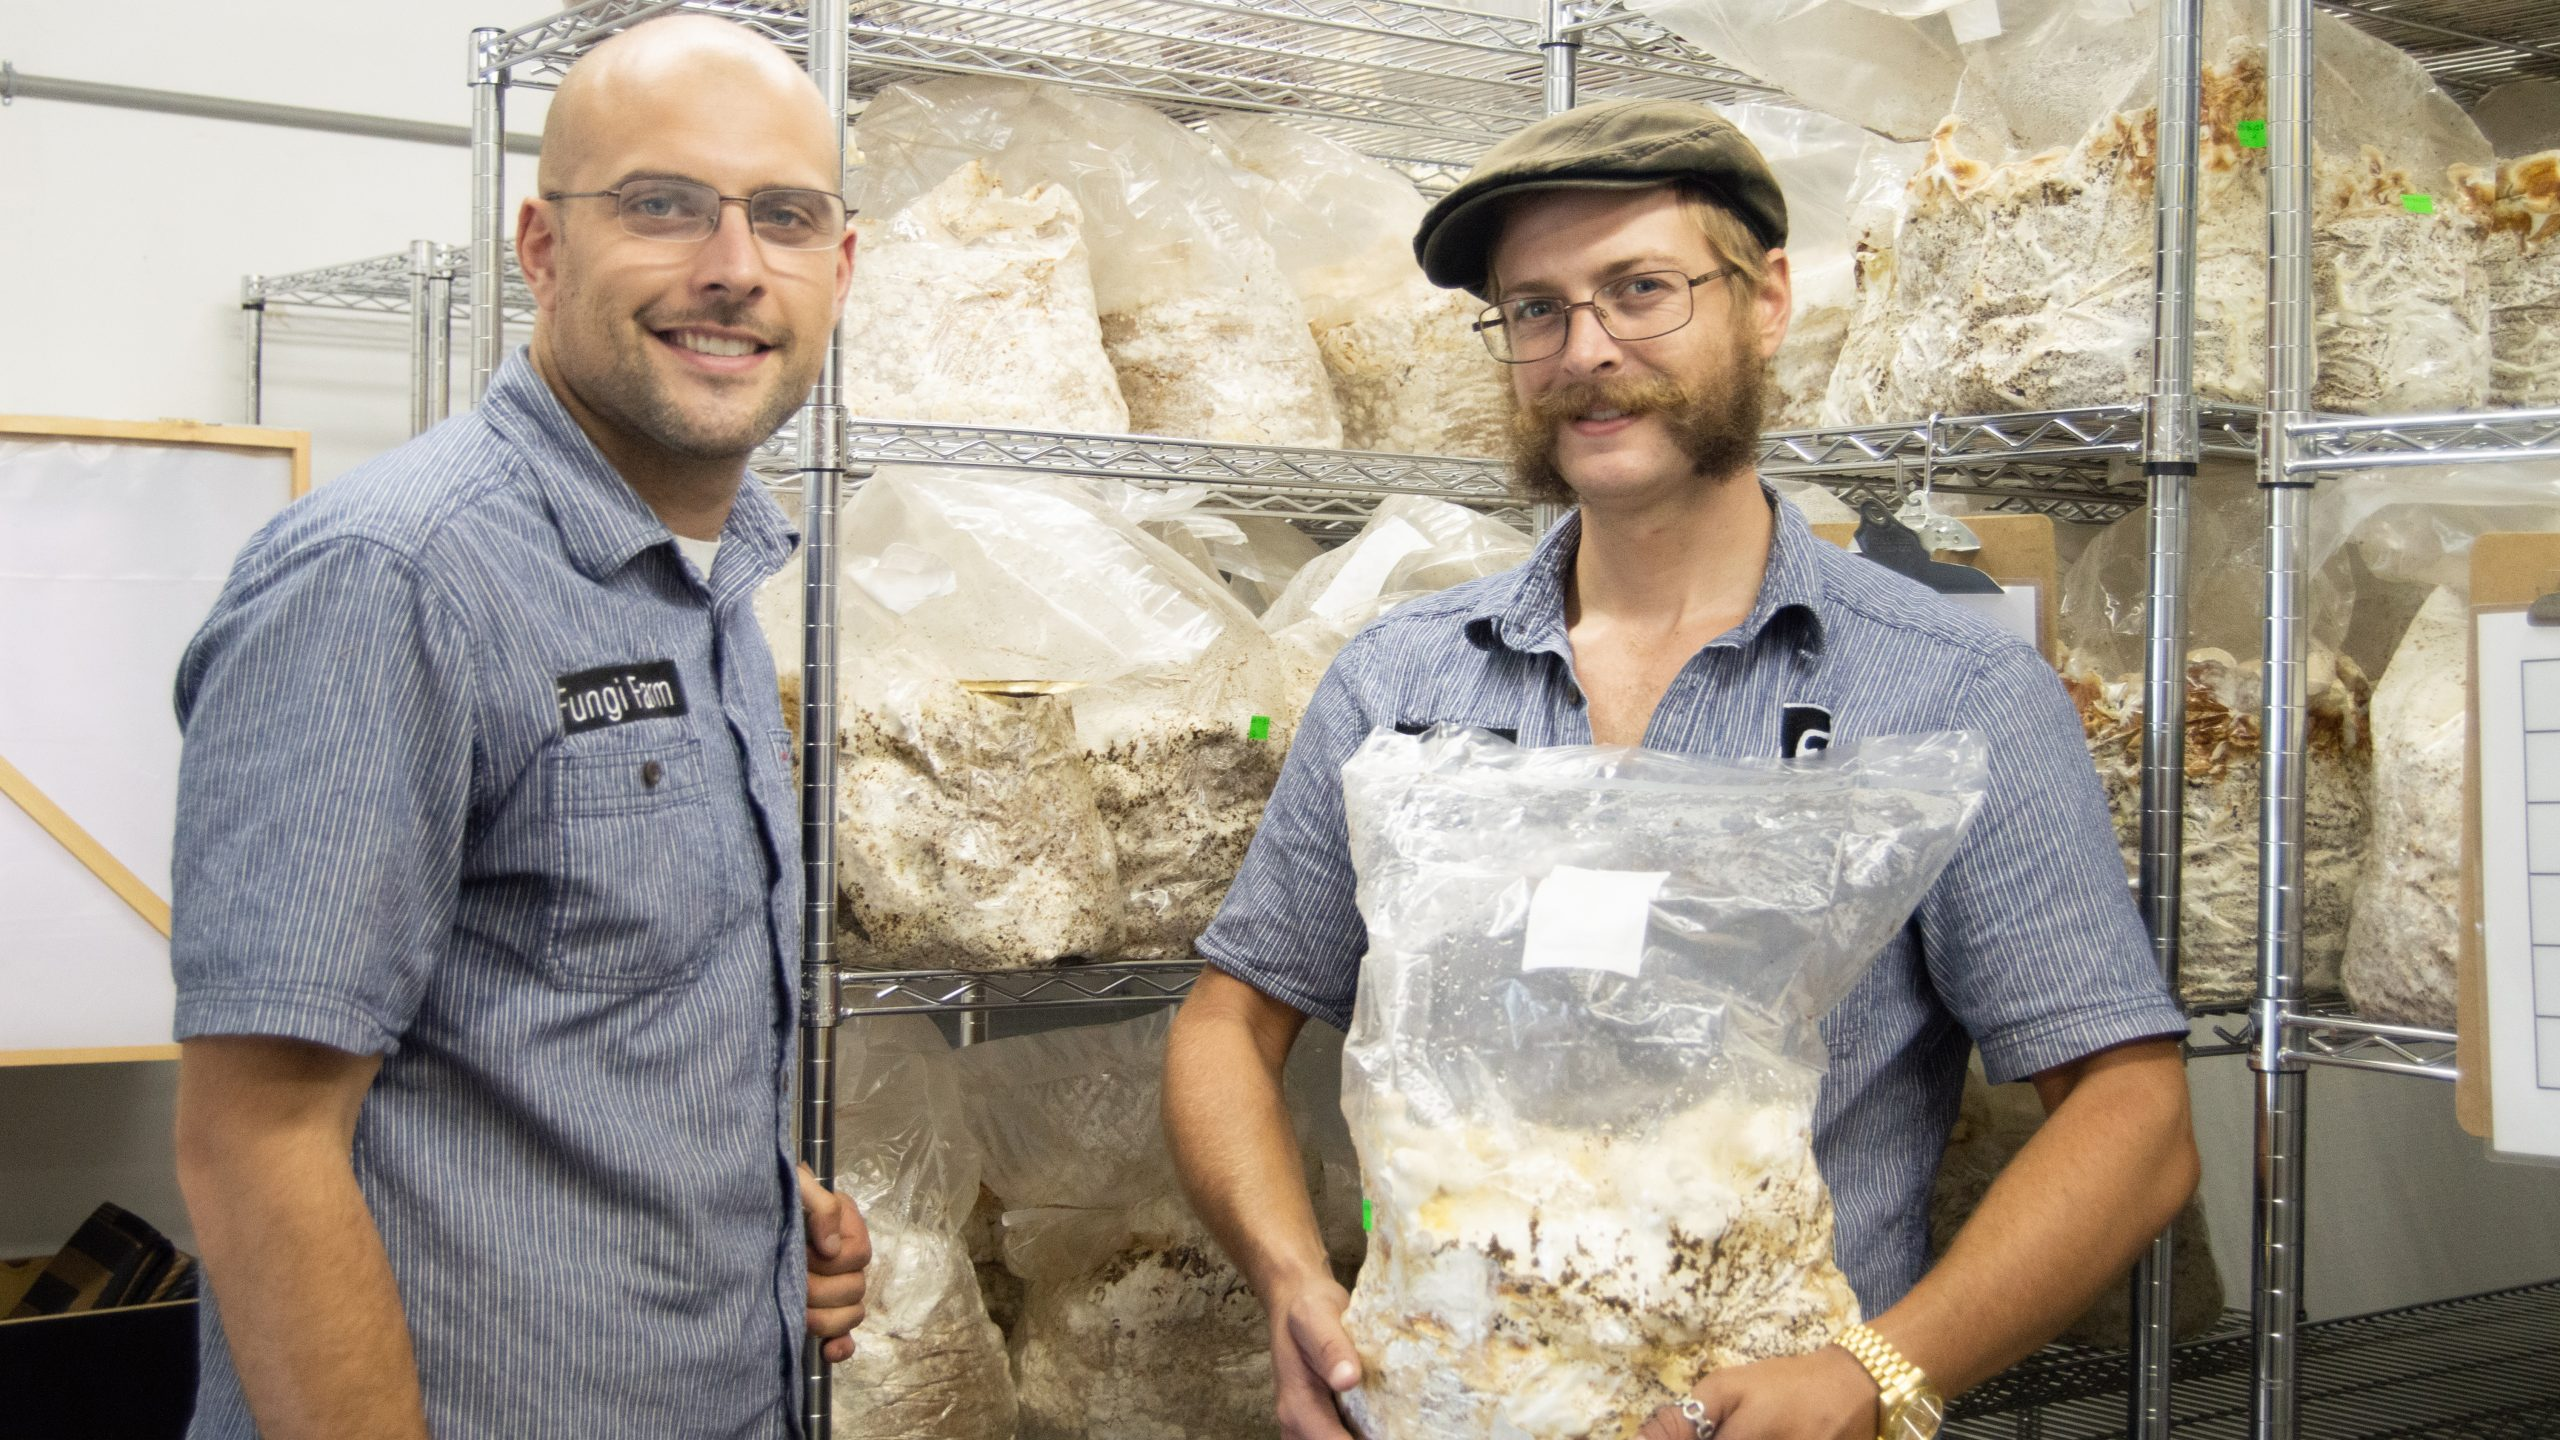 Allen Carroll and Andrew Reynolds in front of bags of mushrooms